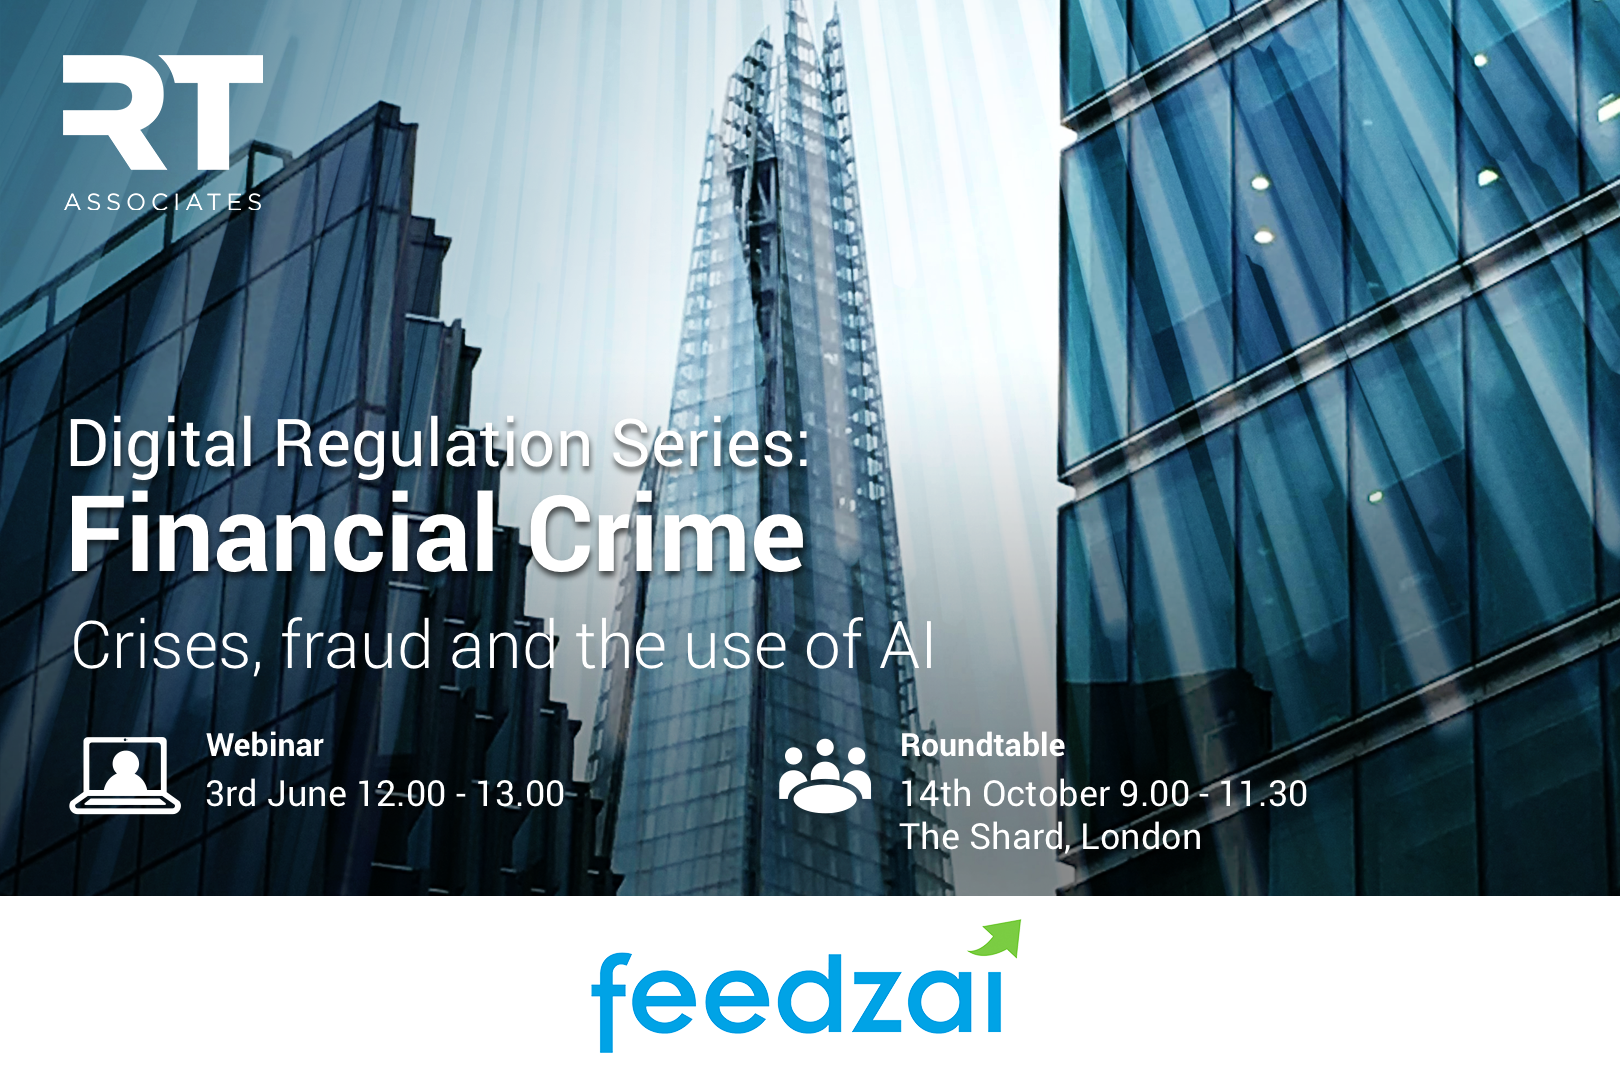 Crisis, fraud and the use of AI webinar